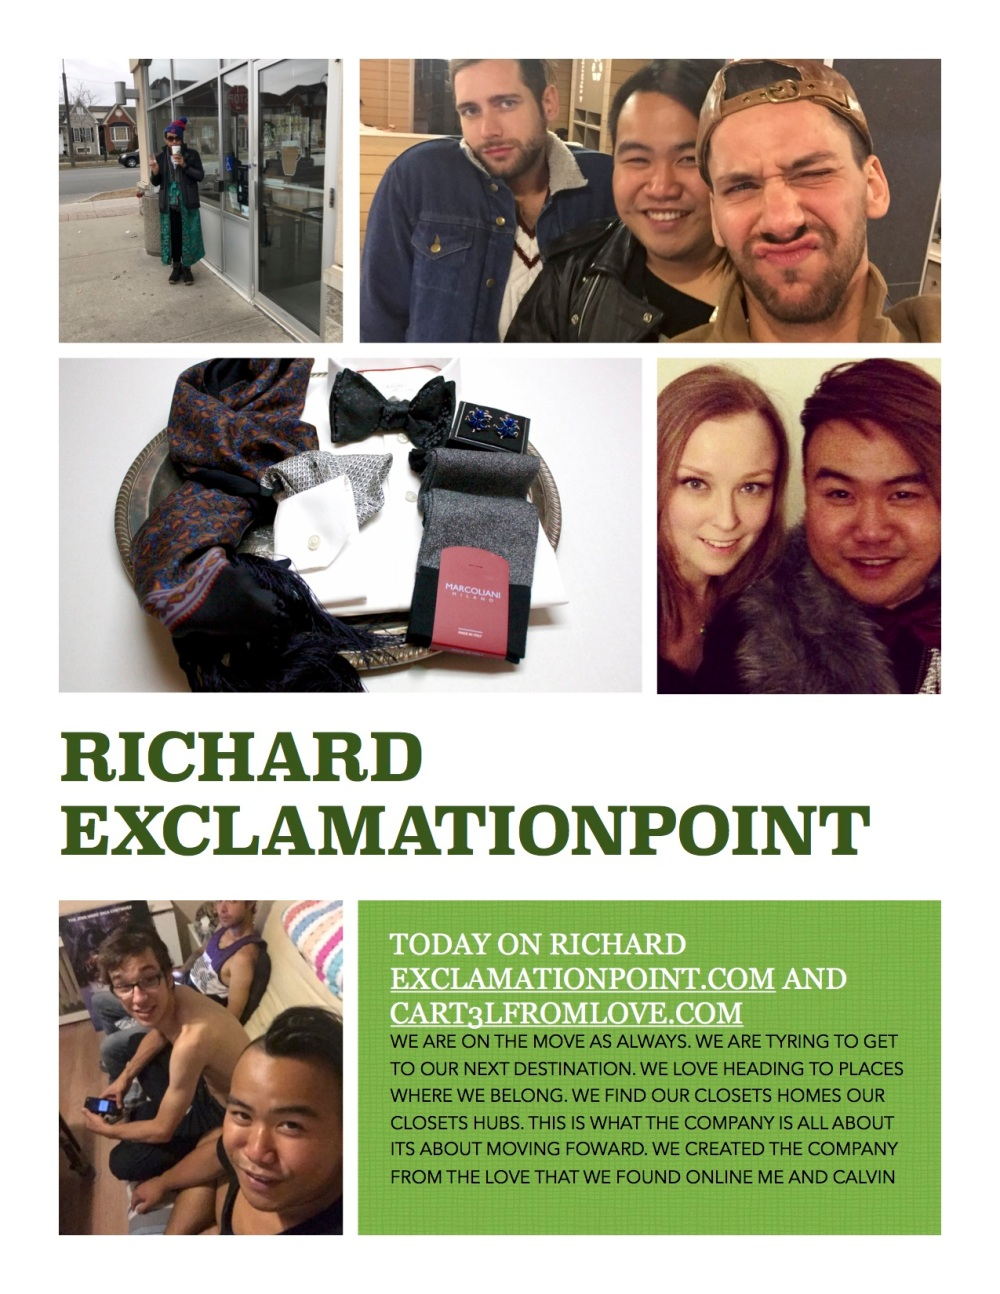 RICHARD EXCLAMATIONPOINT 1.jpg